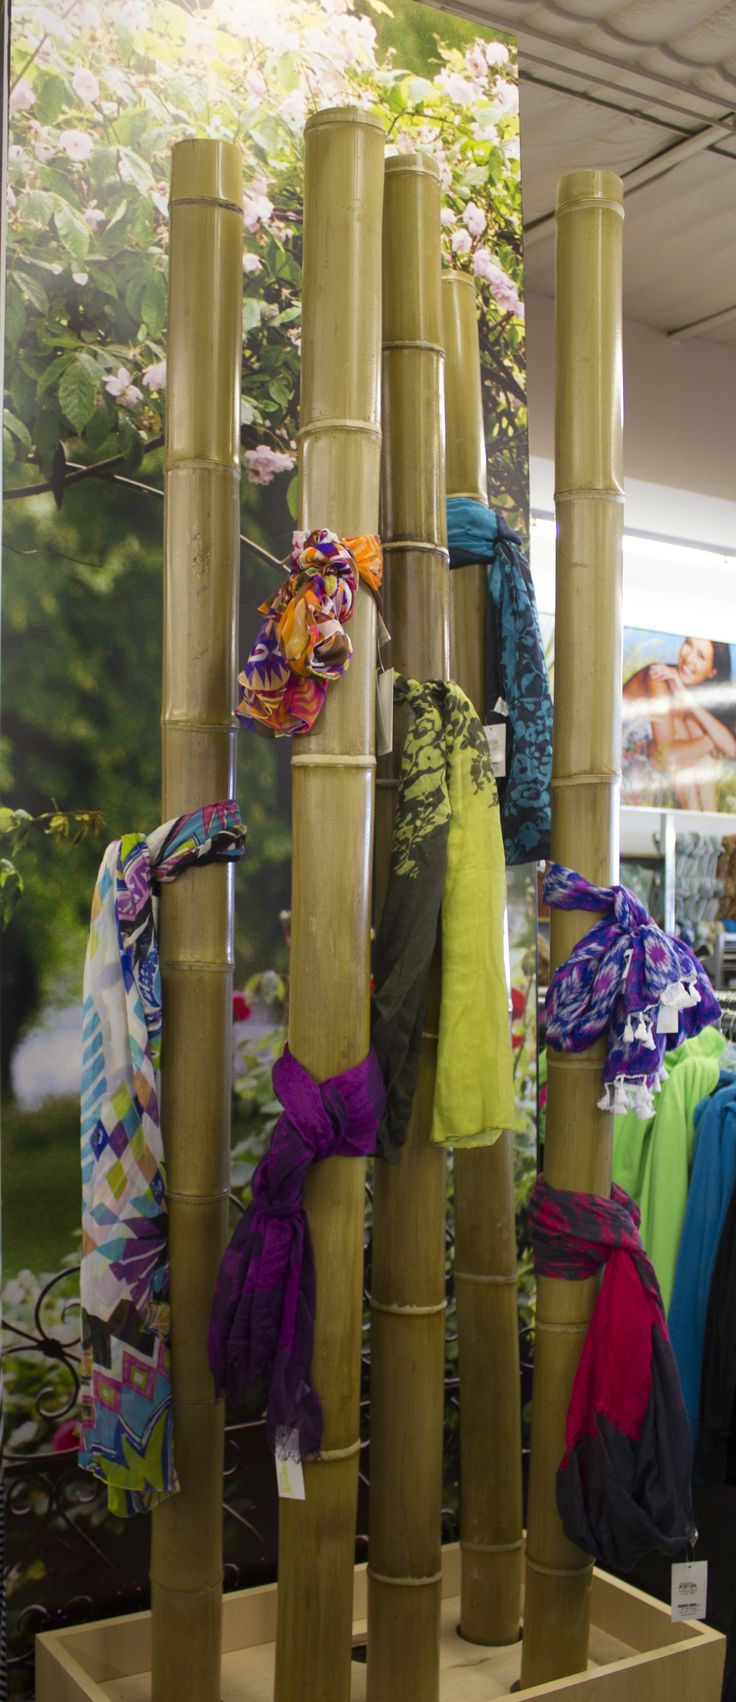 73 best Retail Display - Scarves images on Pinterest | Retail ...